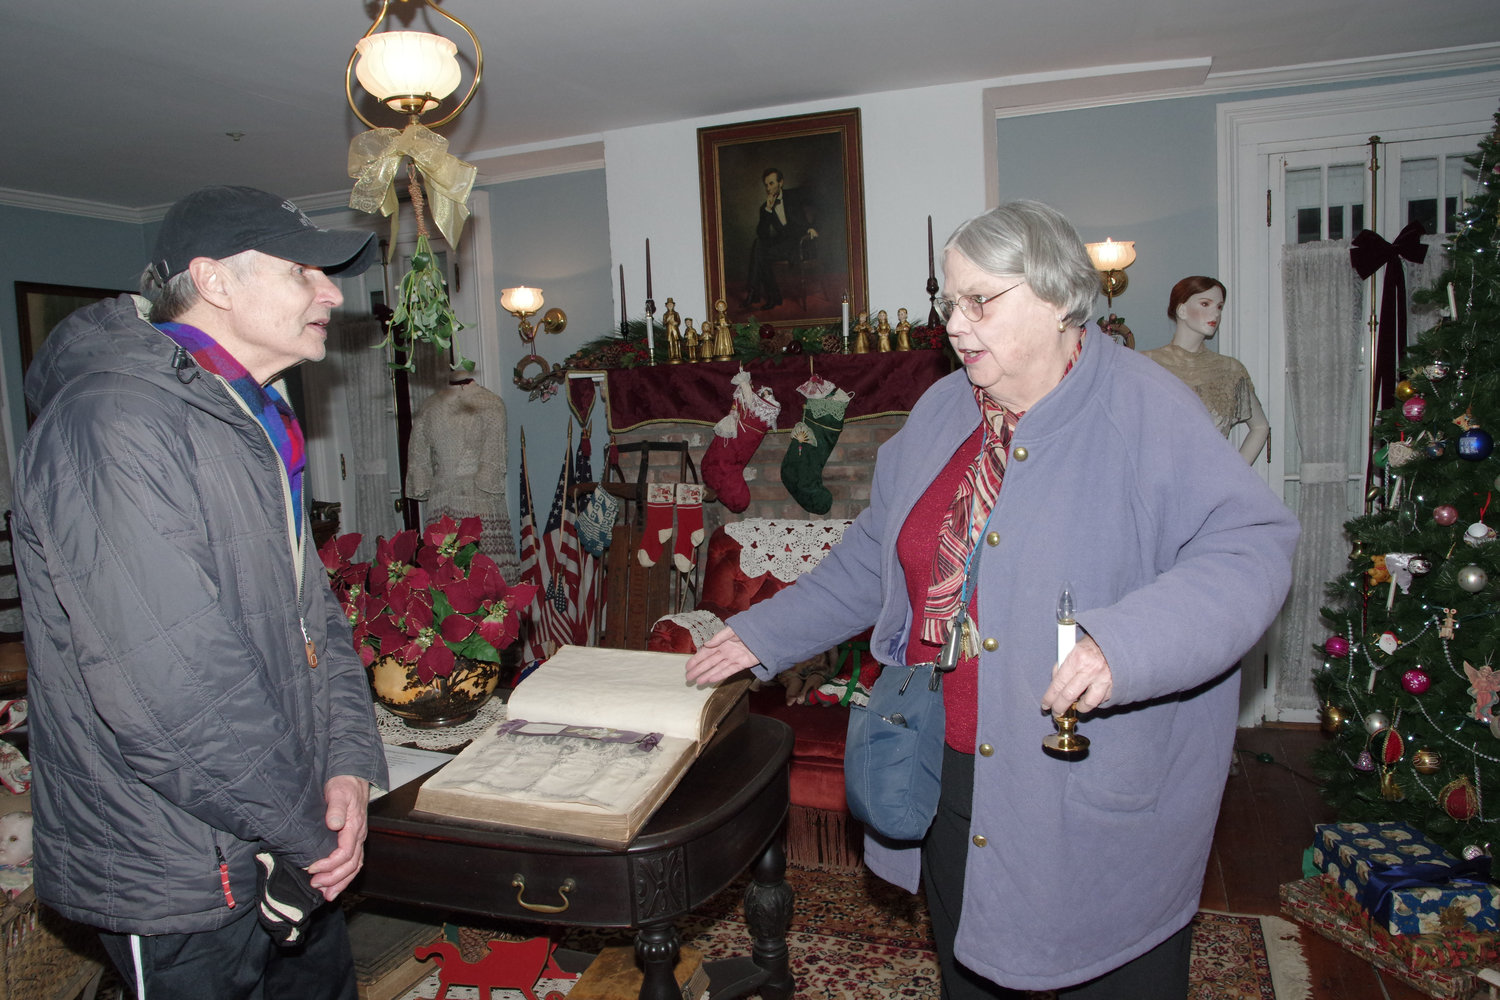 Historical Society member Elizabeth Bailey gave a tour to visitor Ron Jones.